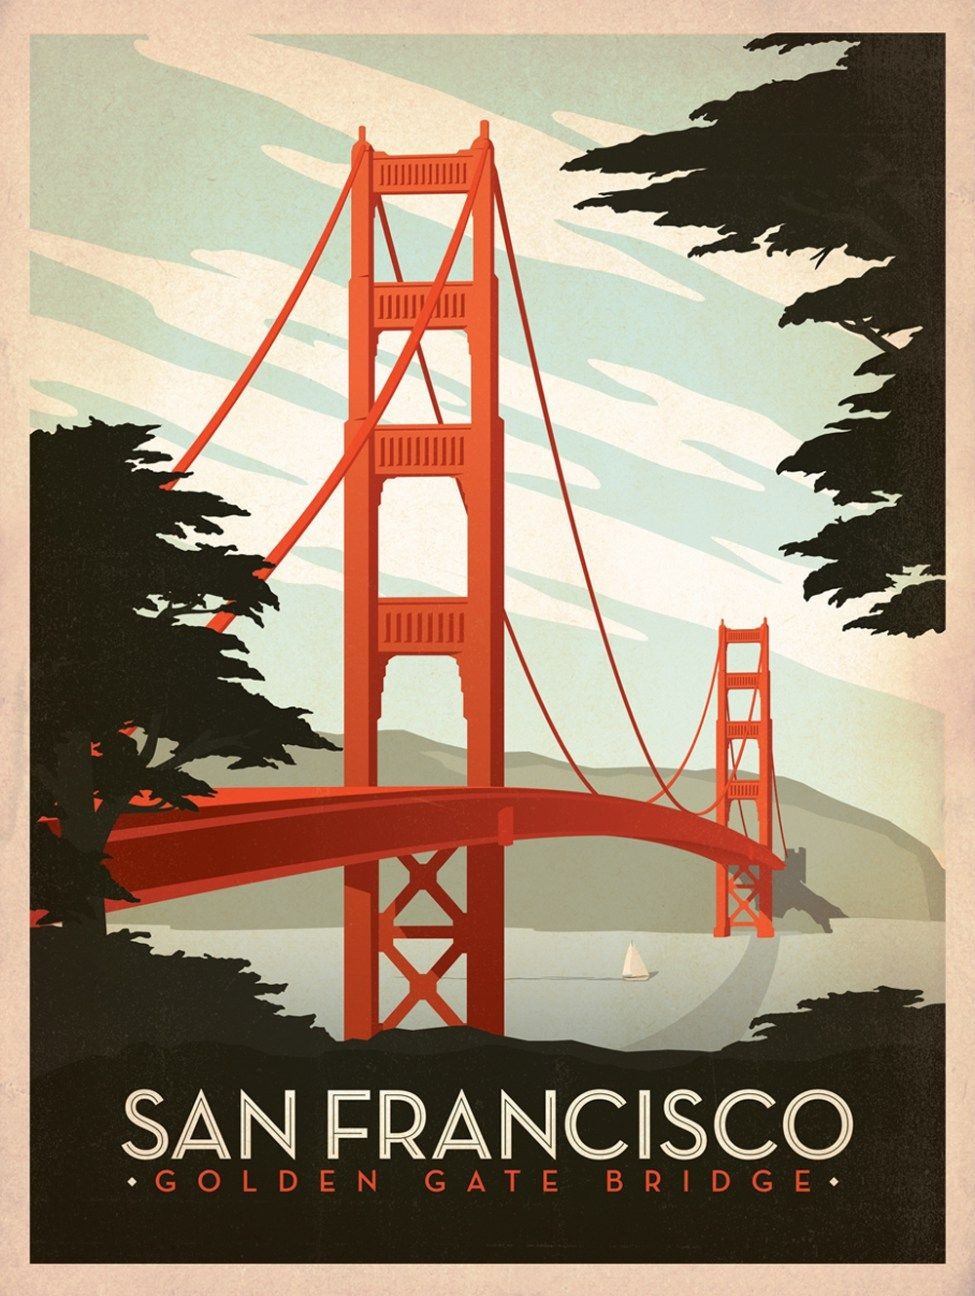 50 Vintage Travel Posters To Feed Your Wanderlust Live Wanderfully Golden Gate Bridge Wall Art Vintage Travel Posters Vintage Posters